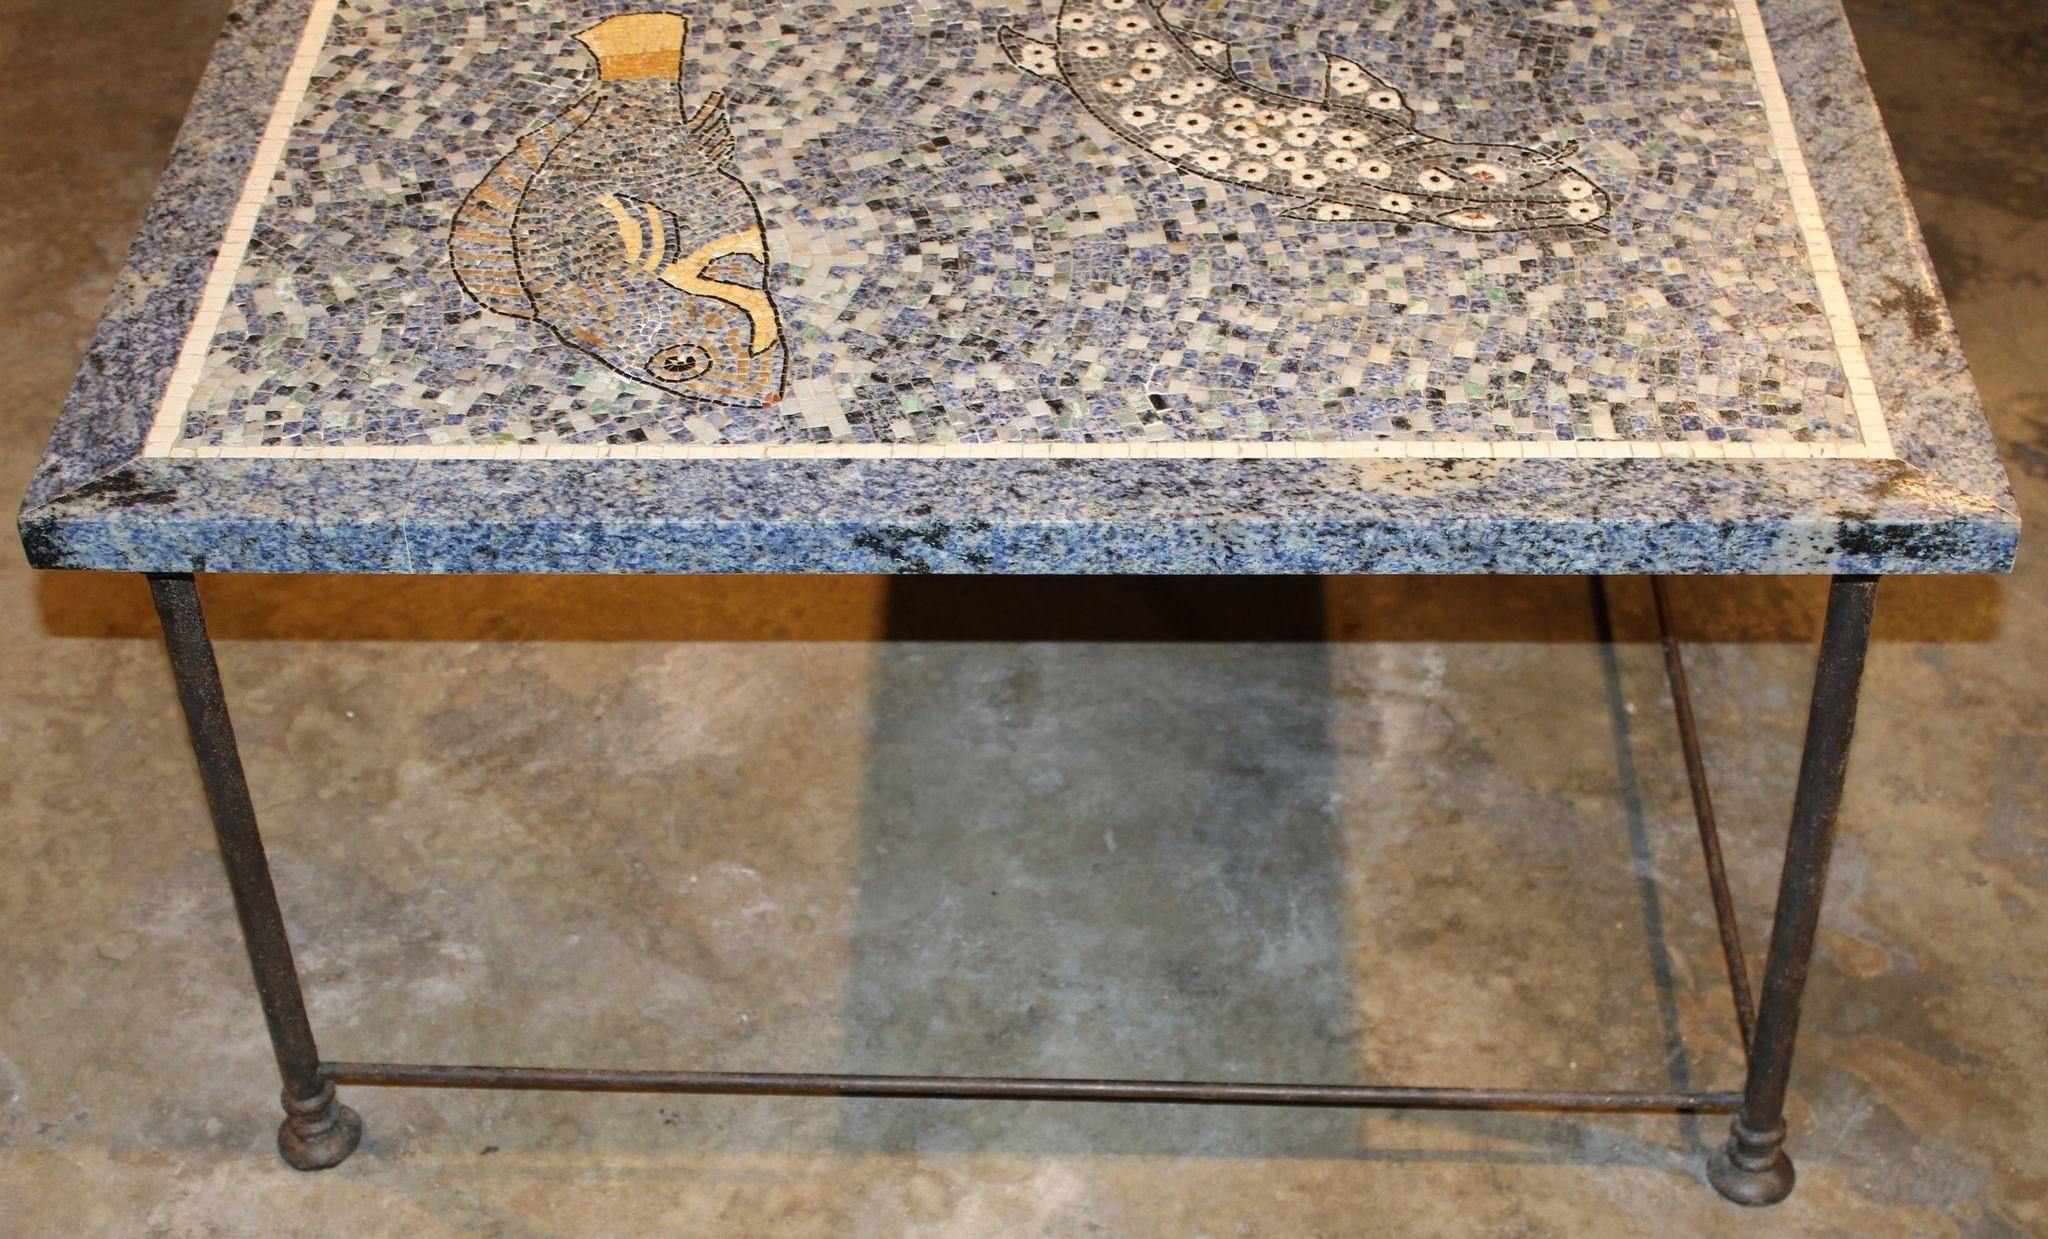 Lapis and Stone Mosaic Coffee Table with Ocean Motif from